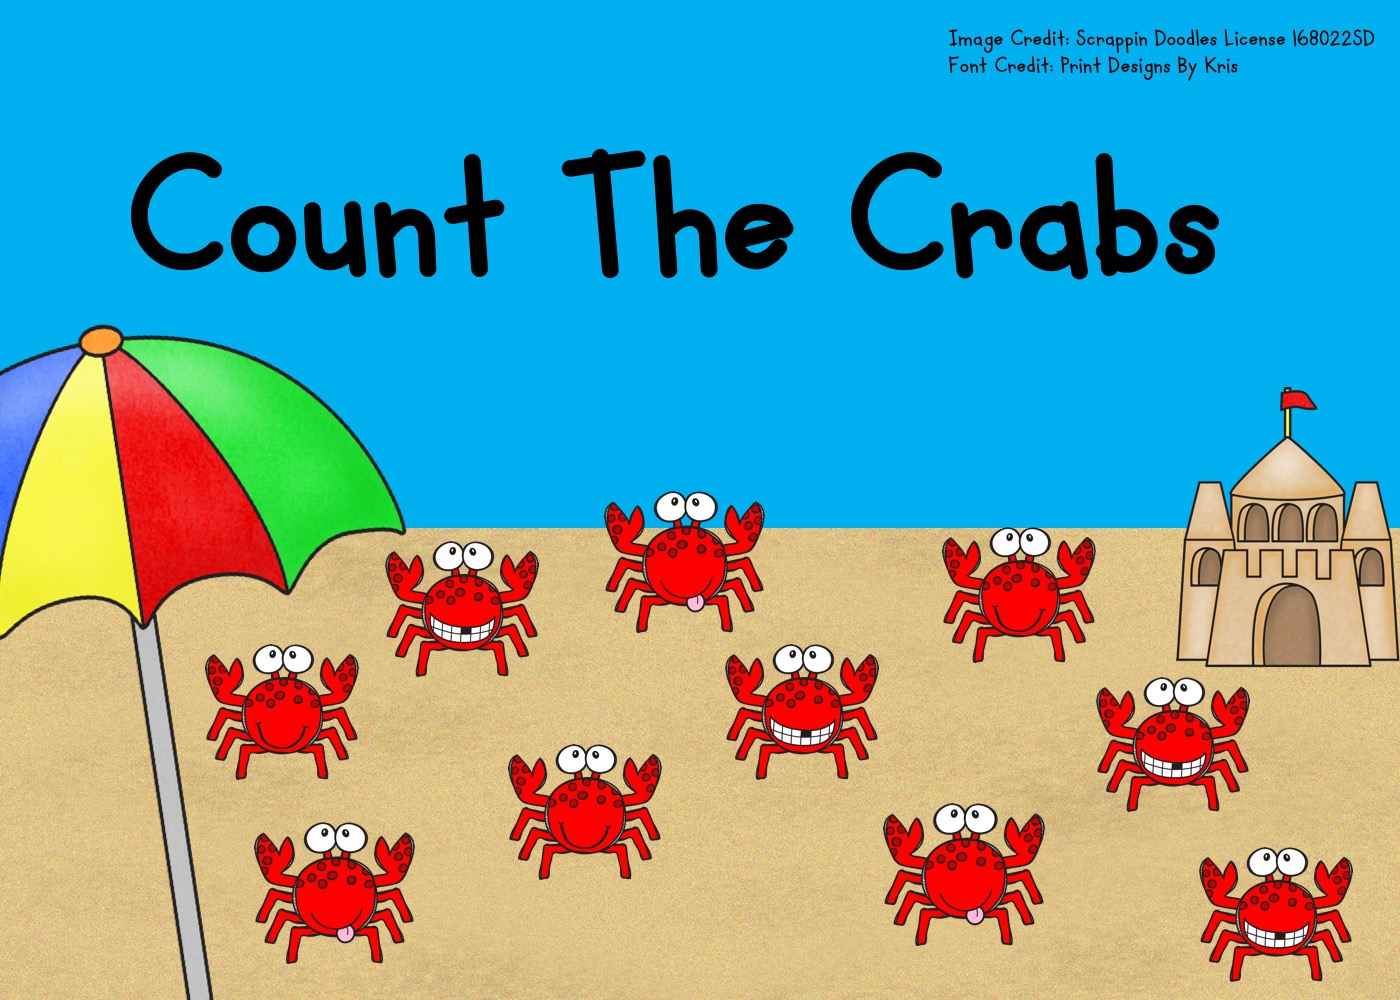 Count The Crabs 1-10